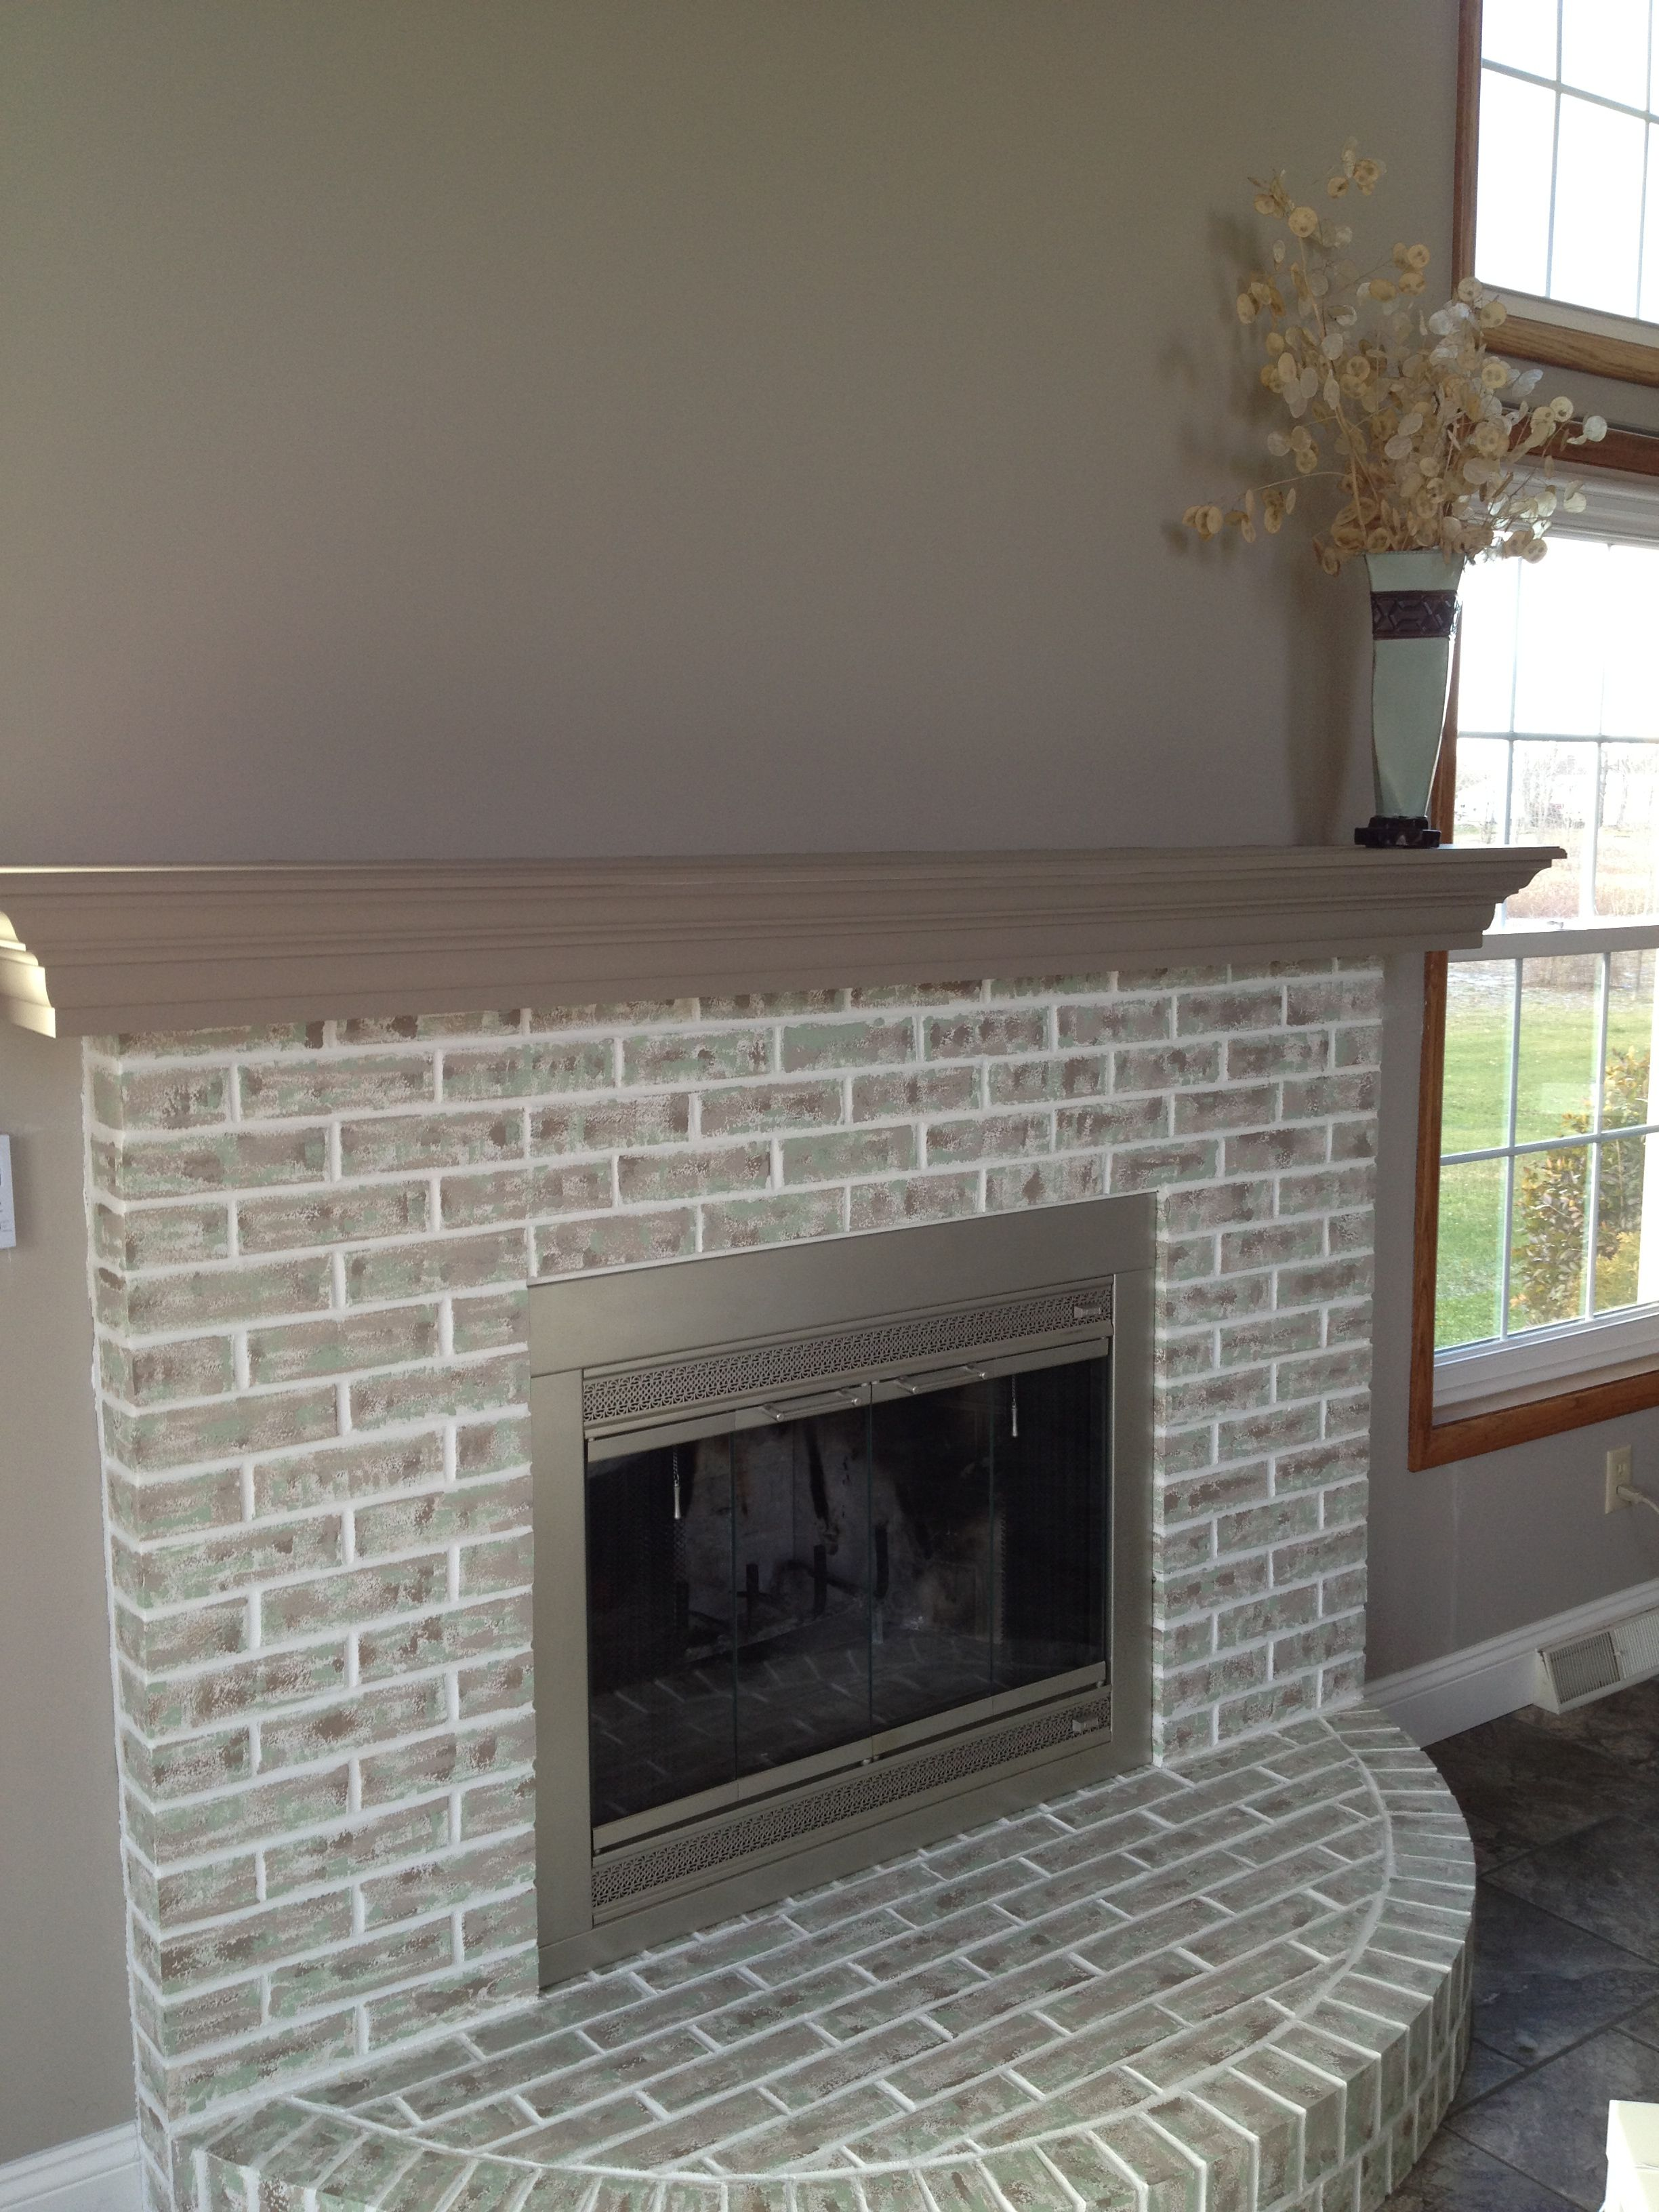 Completed Fireplace Painted Over Red Brick Red Brick Fireplaces Brick Fireplace Makeover Painted Brick Fireplaces